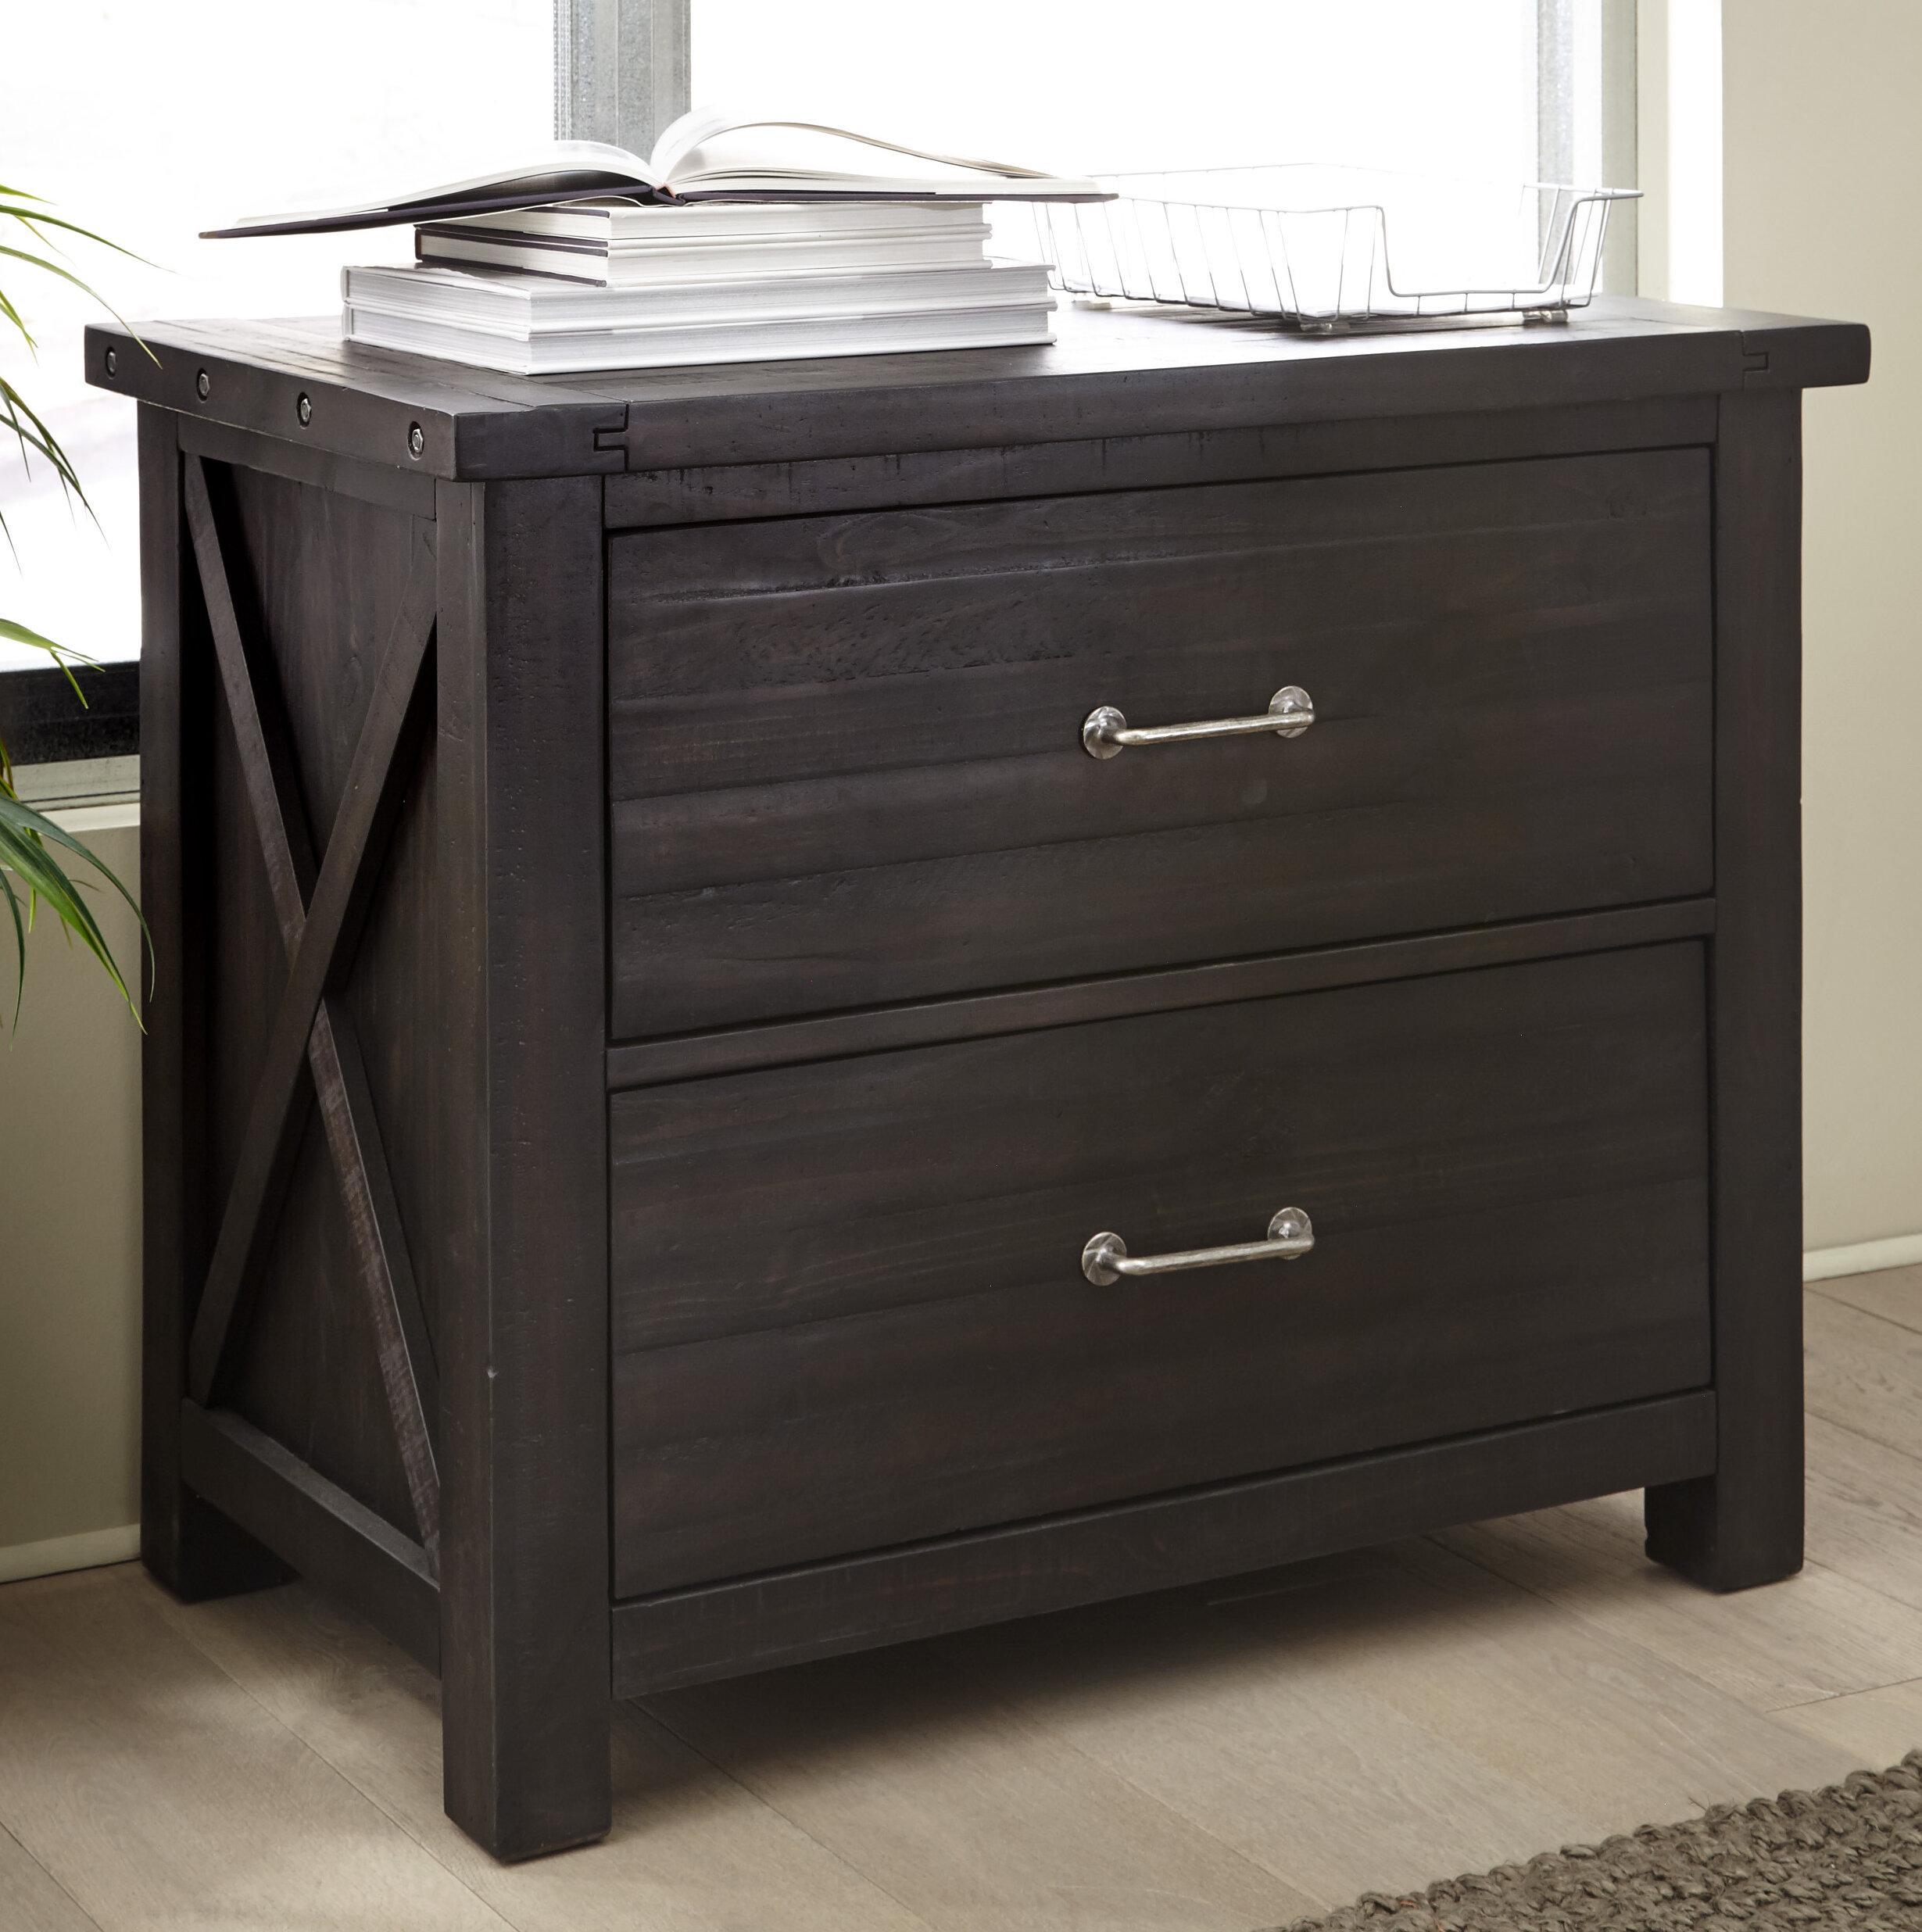 Laurel Foundry Modern Farmhouse Langsa Solid Wood 2 Drawer Lateral Filing Cabinet Wayfair